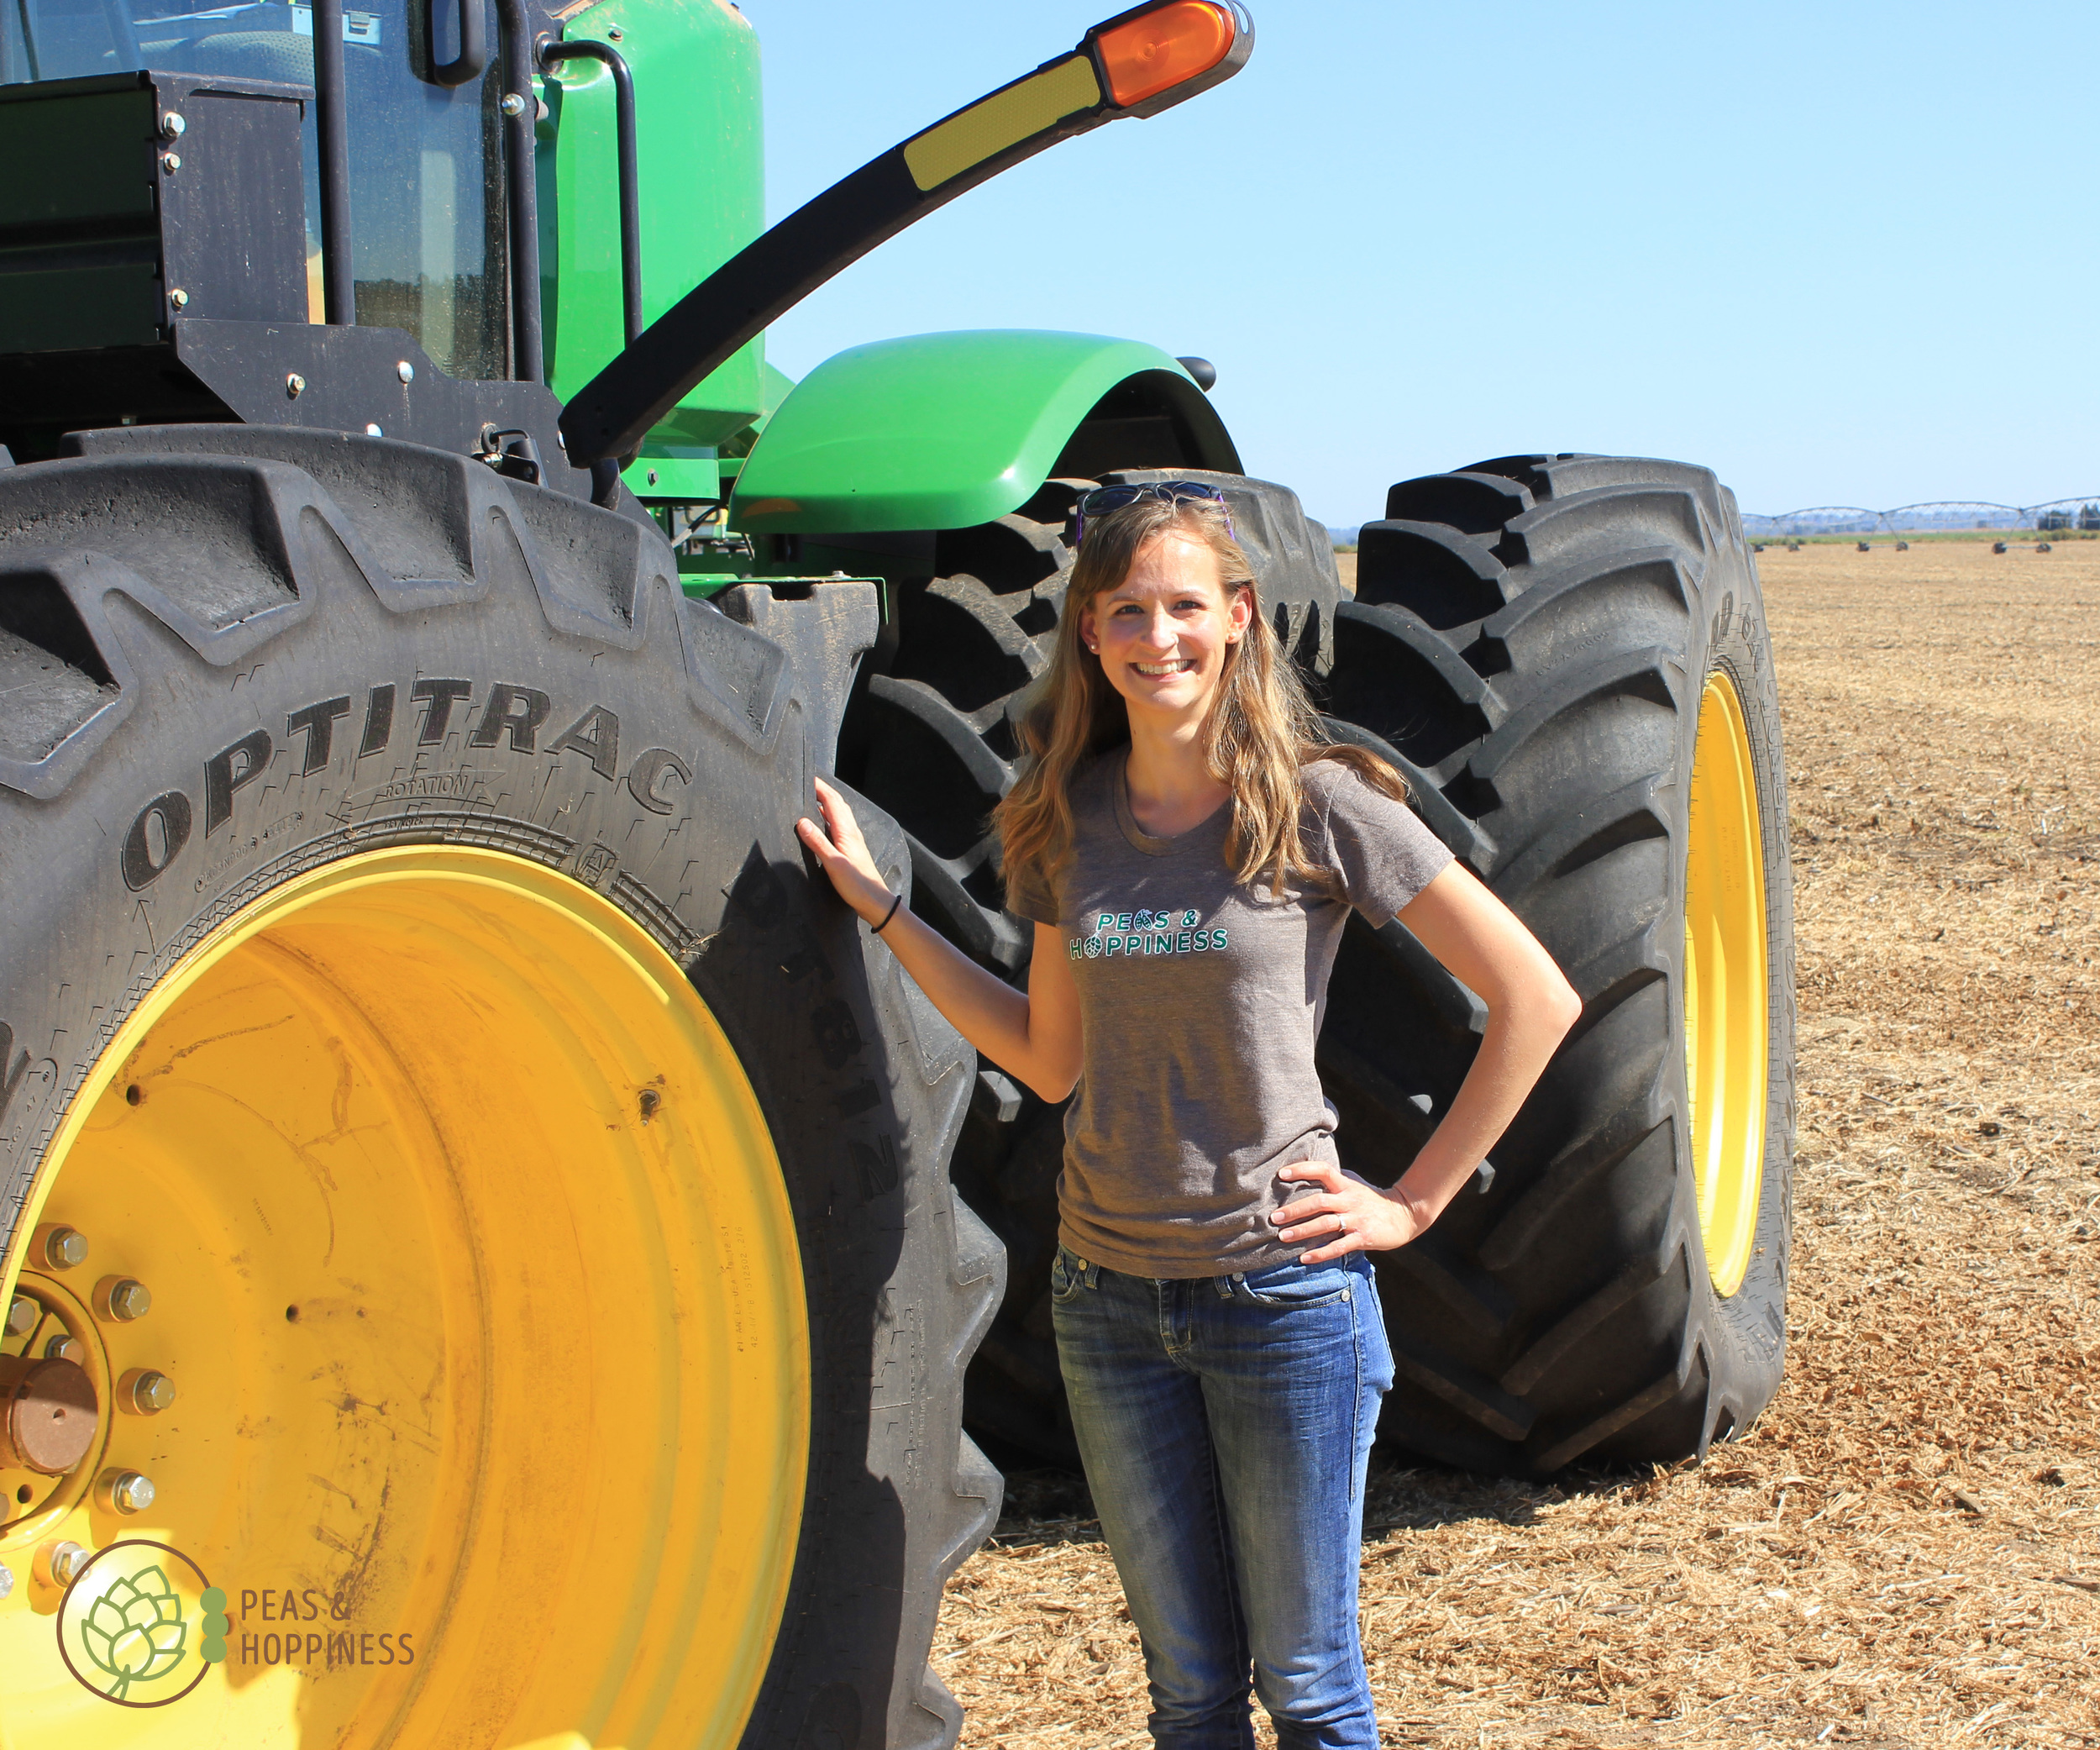 Standing next to the giant tire of the air seeder. This big equipment is what makes Kansas the bread basket of the world!